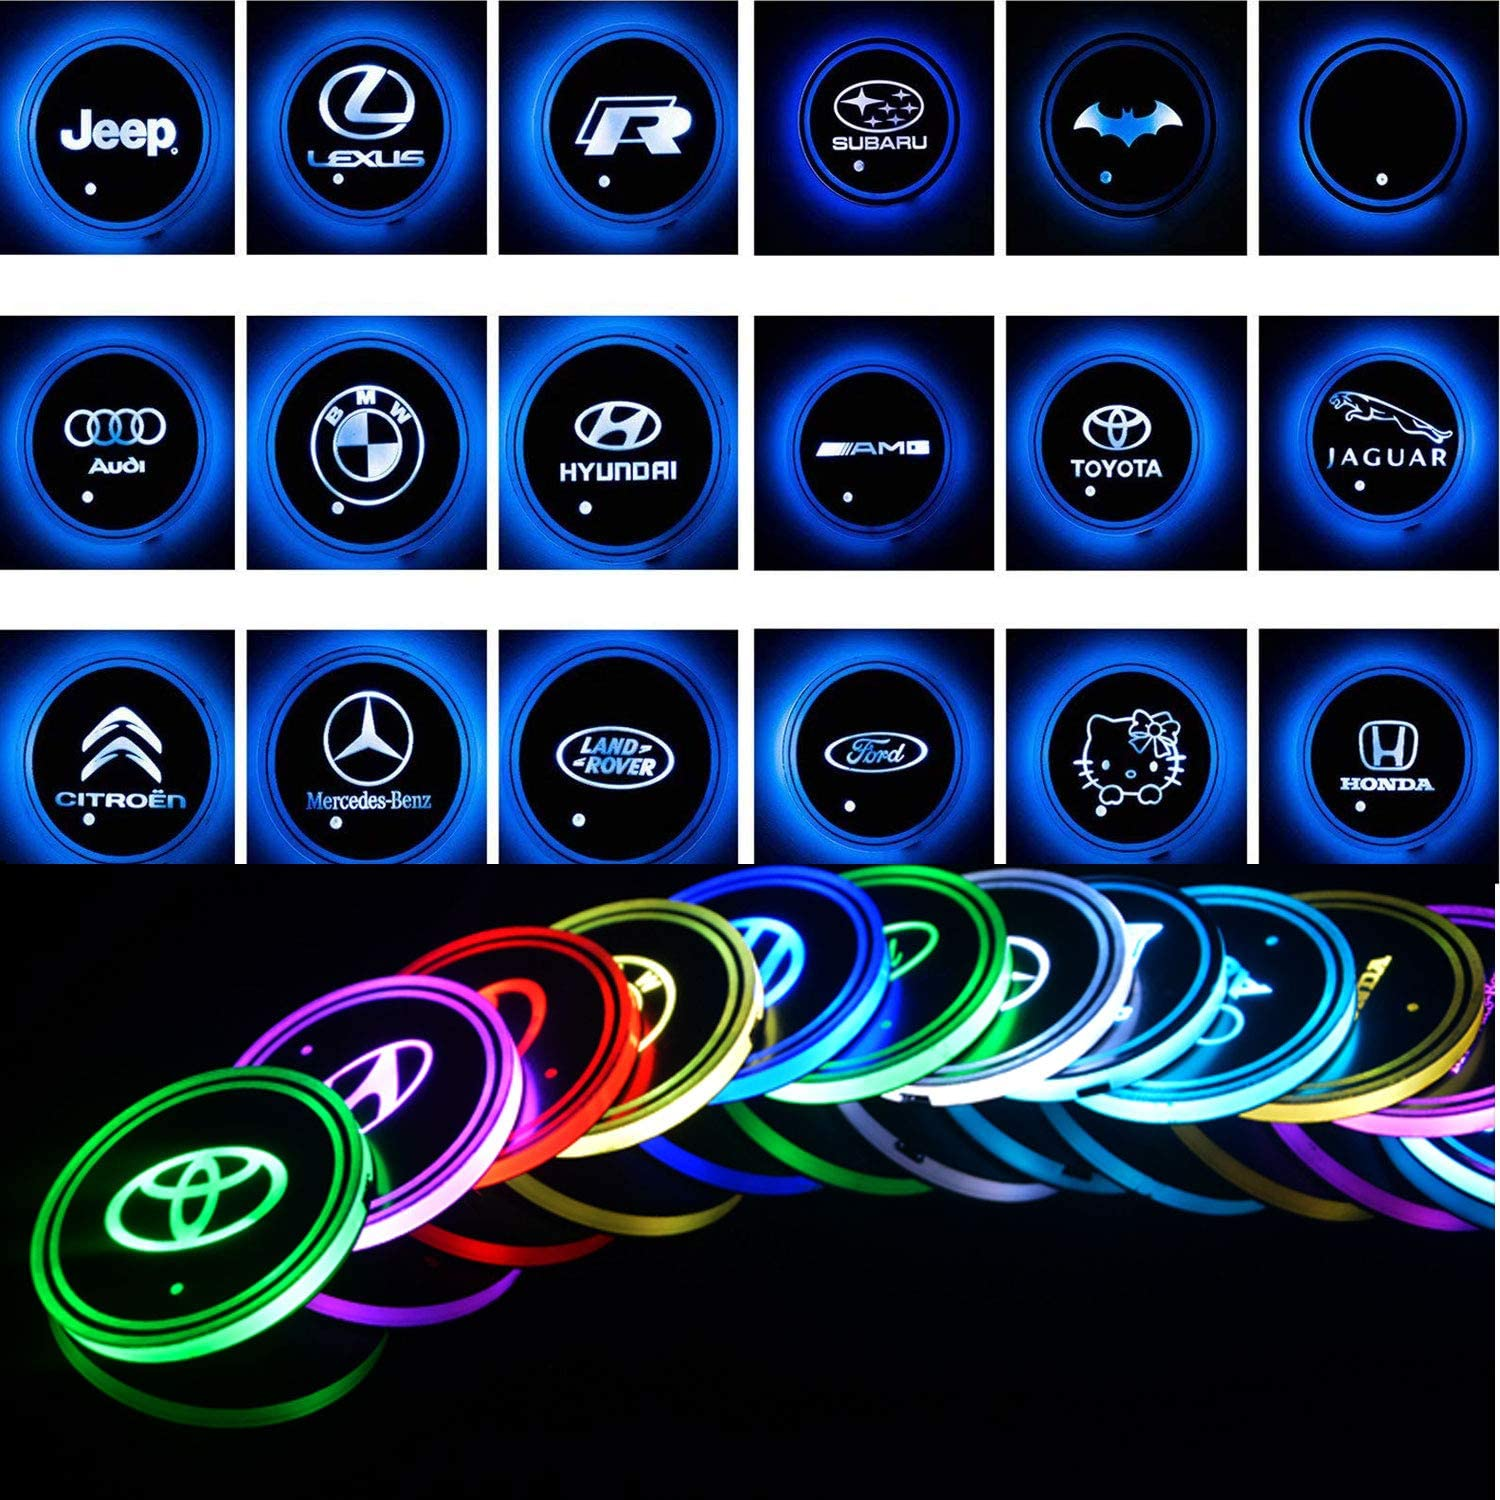 for Acura ATlife LED Car Logo Cup Holder Pad Waterproof Bottle Drinks Coaster Built-in Light 7 Colors Changing USB Charging Mat Auto LED Cup Mat Car Atmosphere Lamp 2PCS